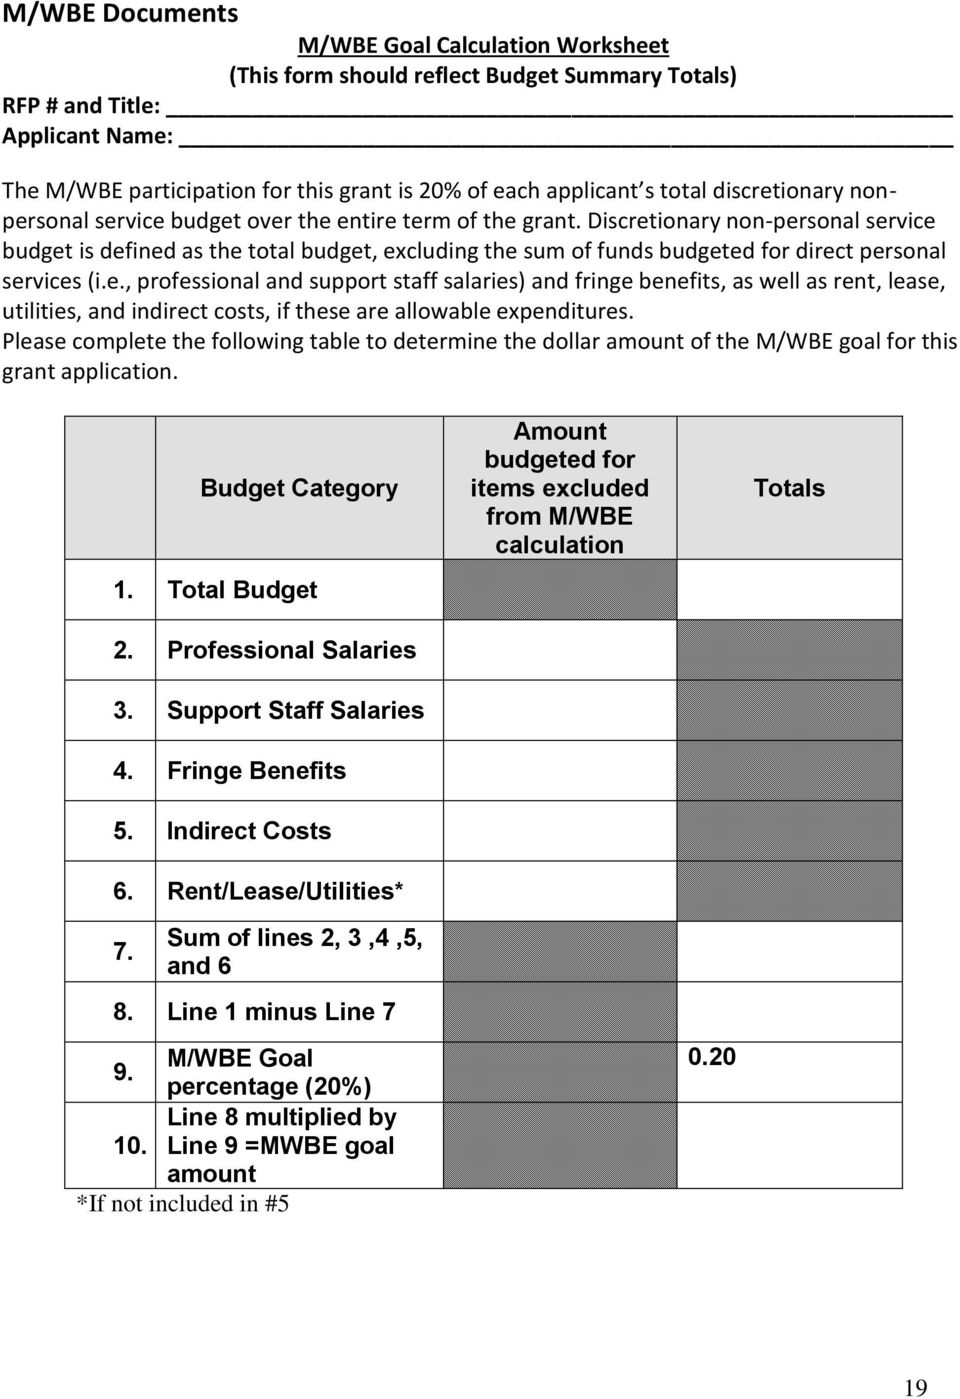 Discretionary non-personal service budget is defined as the total budget, excluding the sum of funds budgeted for direct personal services (i.e., professional and support staff salaries) and fringe benefits, as well as rent, lease, utilities, and indirect costs, if these are allowable expenditures.